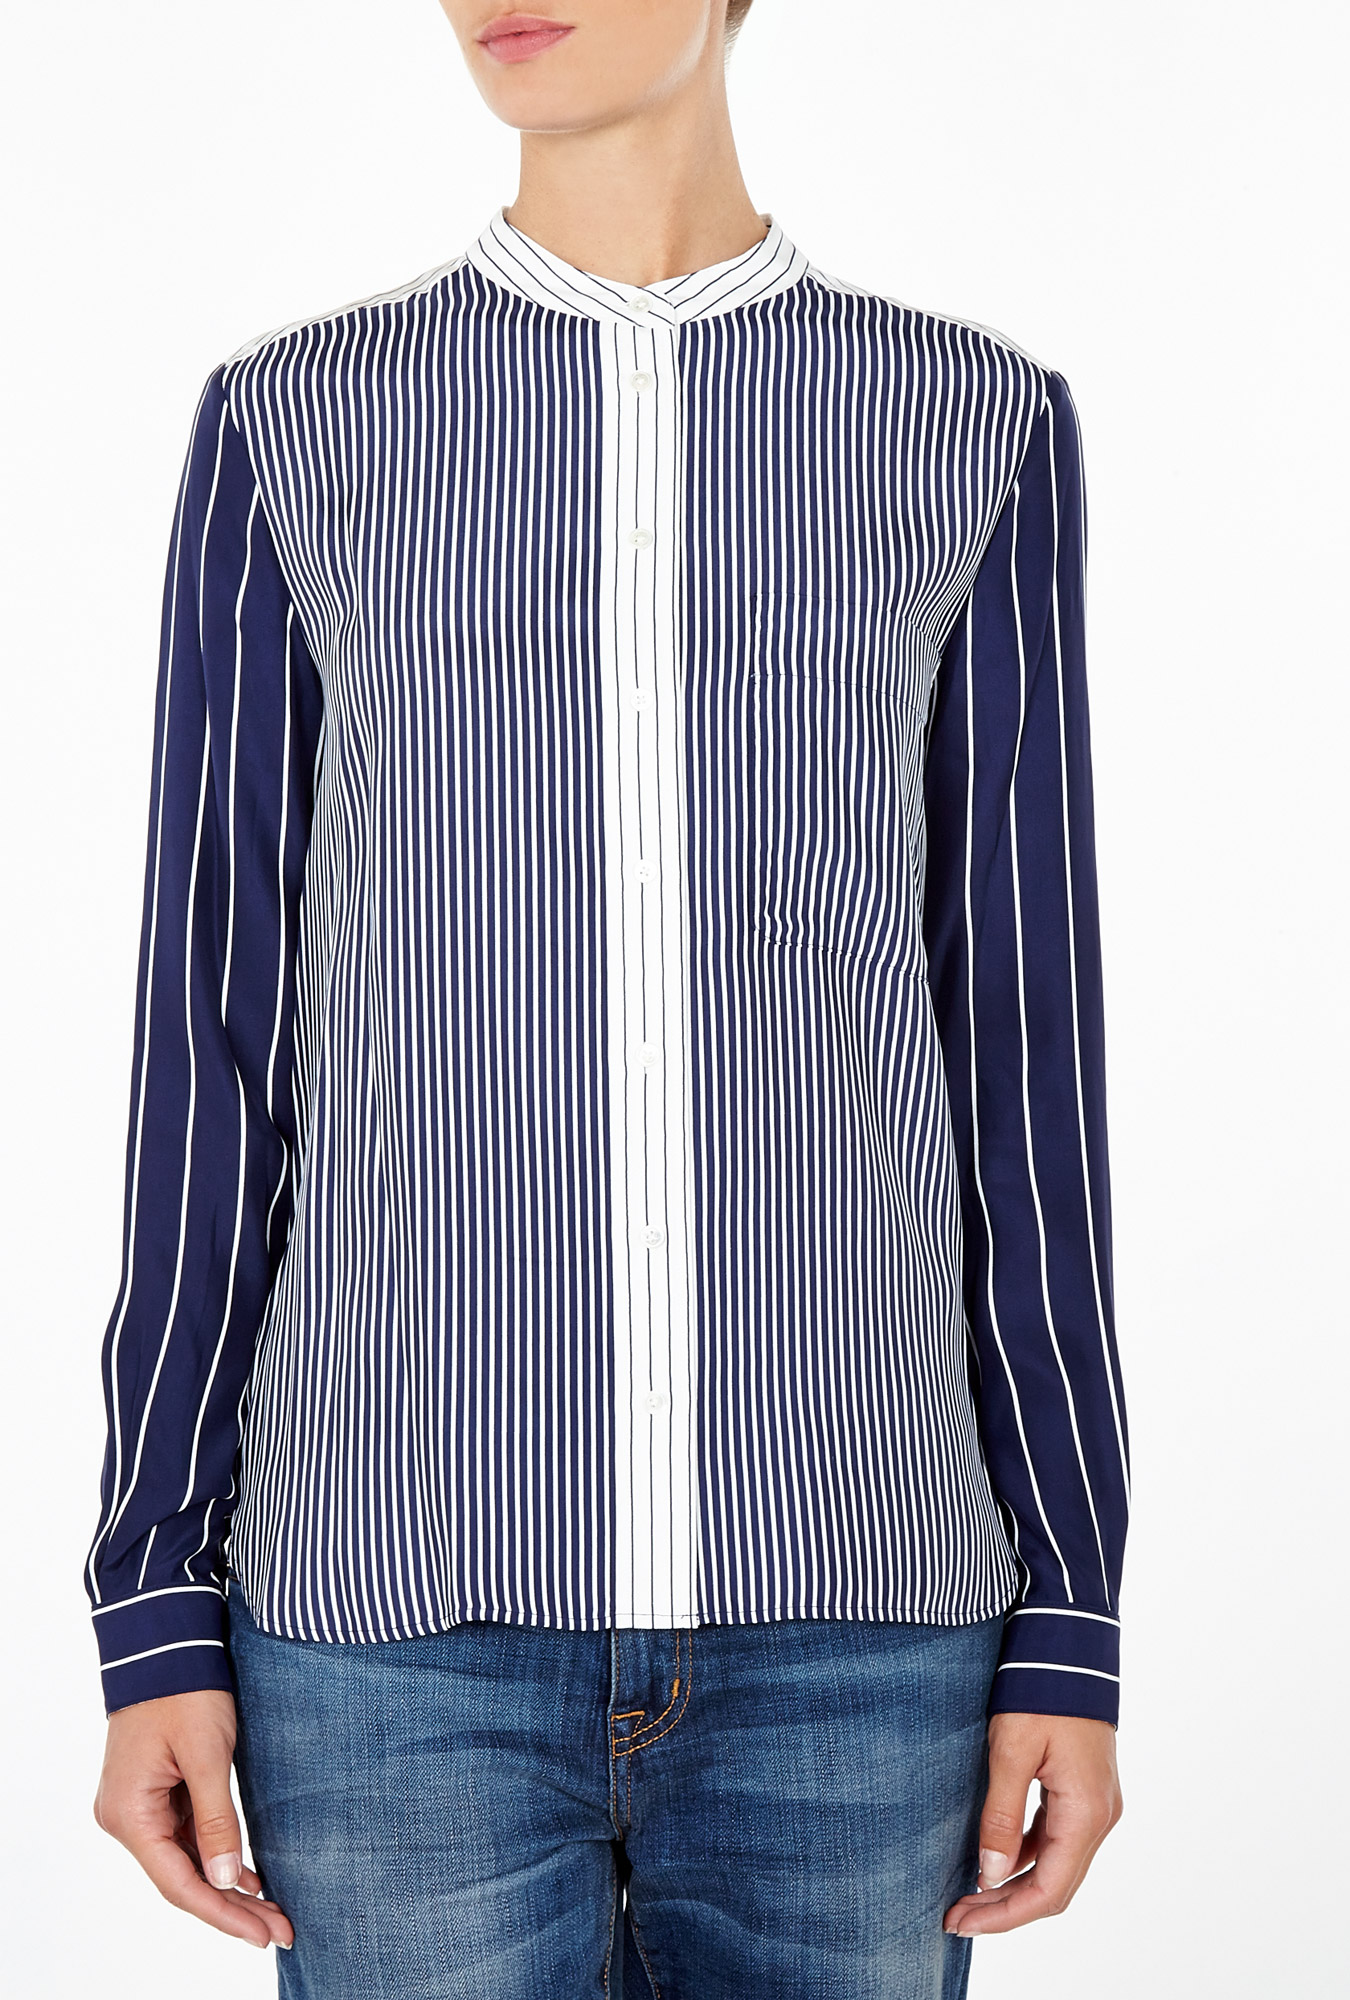 Pinstripe Collarless Shirt by Joseph